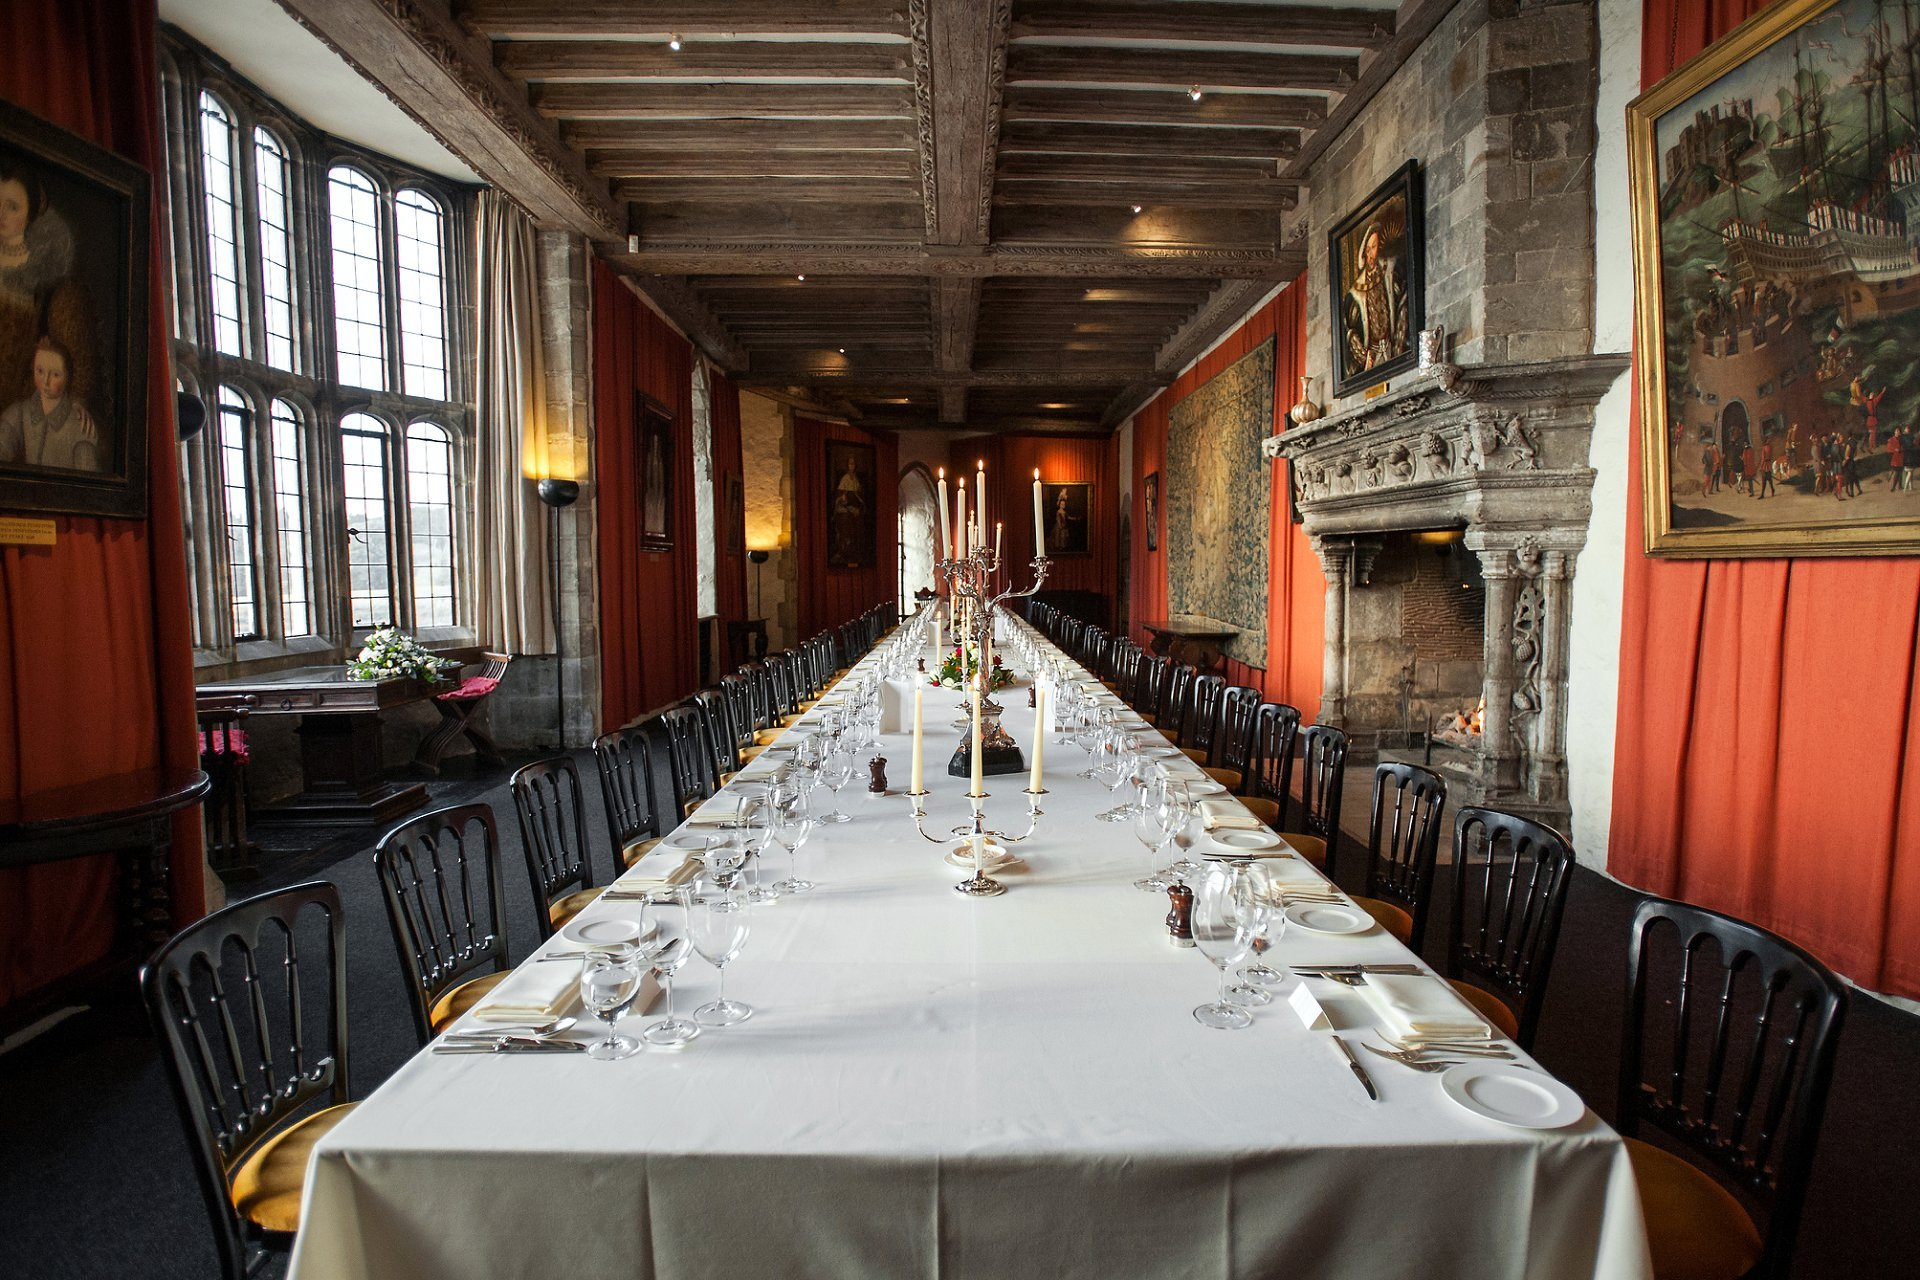 The Henry VIII Banqueting Hall laid for a wedding breakfast with simple table settings and elaborate silver candelabras